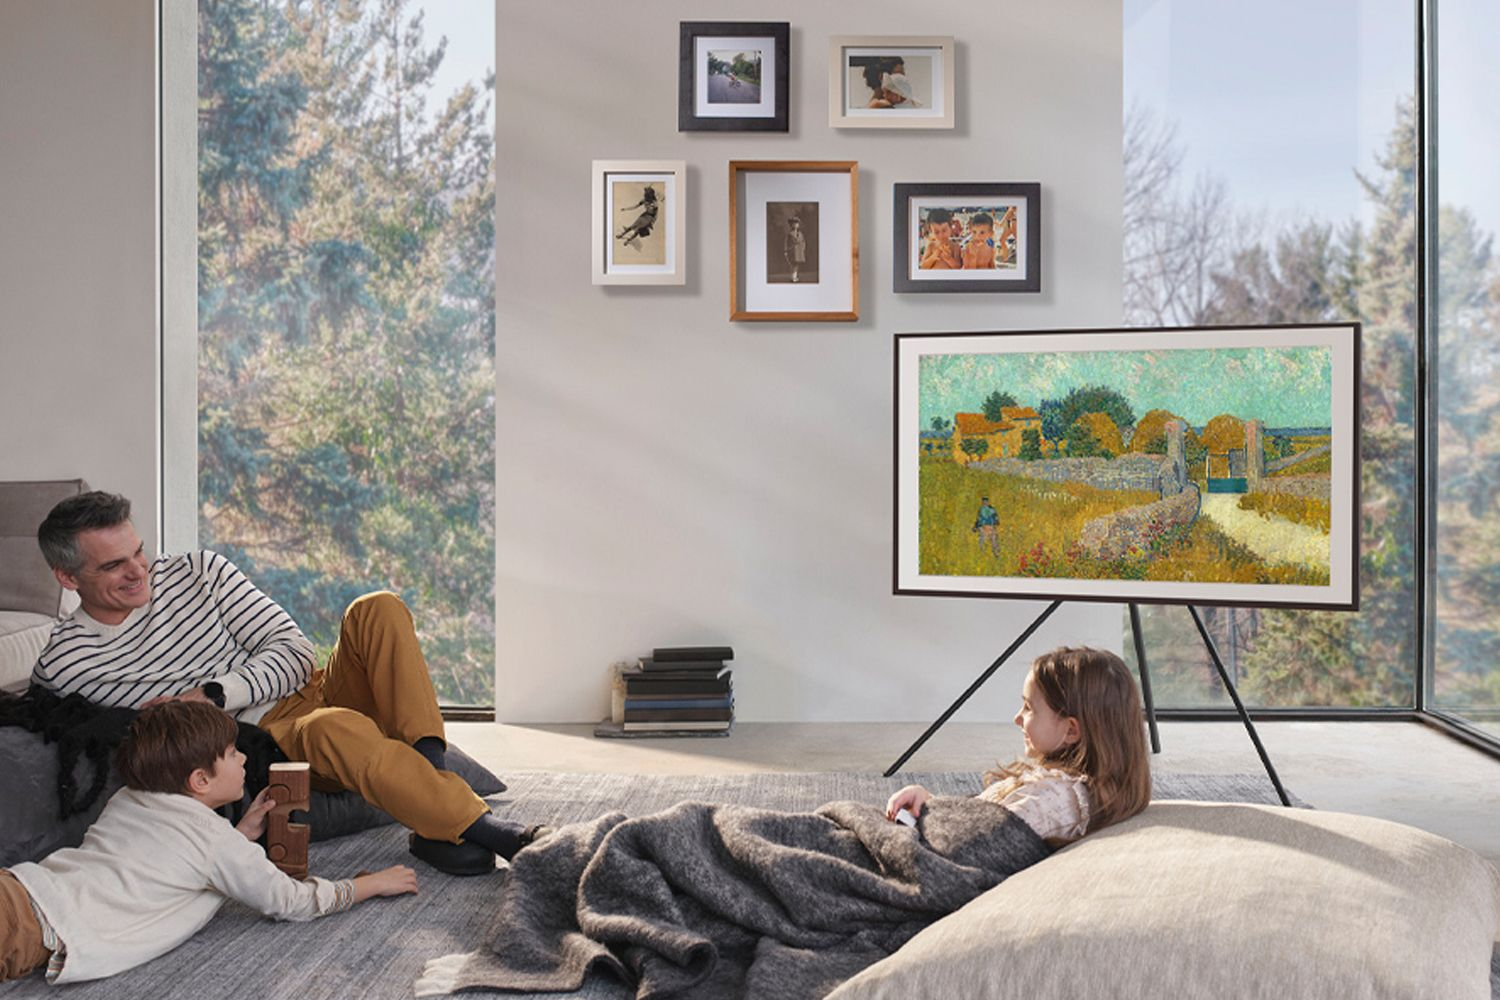 Samsung's The Frame TV will add a stylish touch to homes Image: Courtesy of Samsung